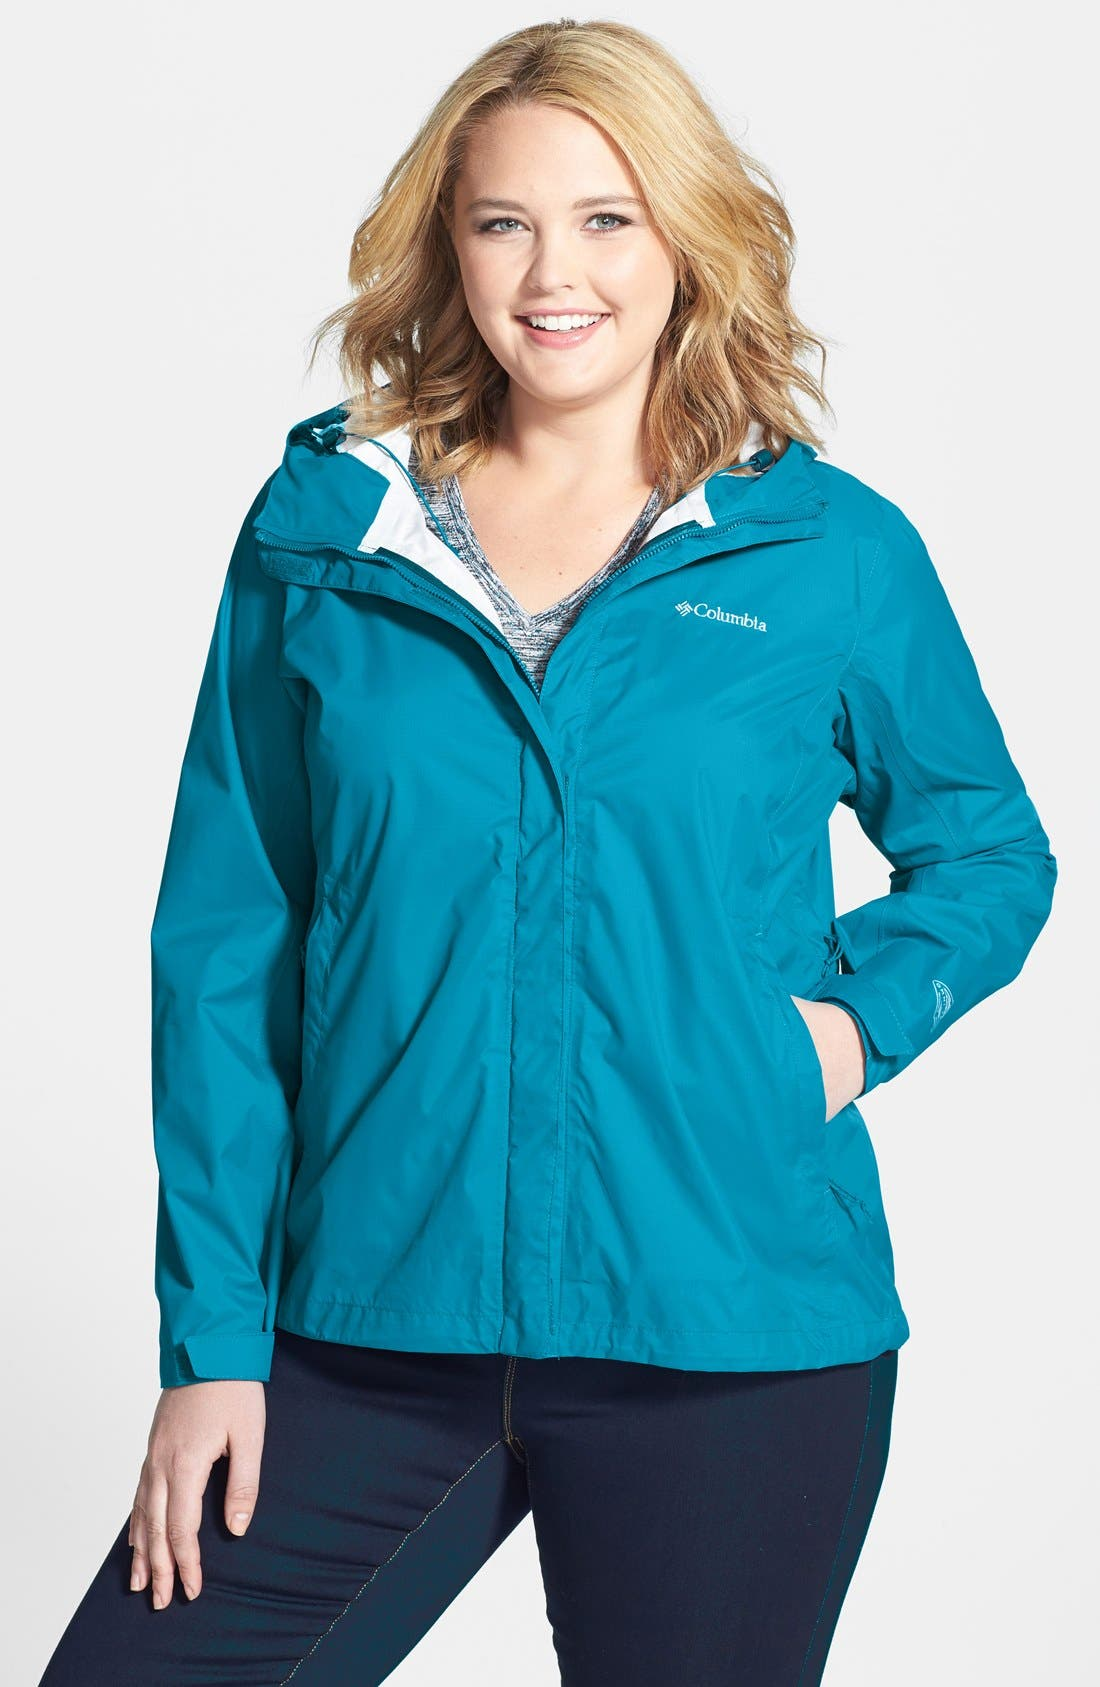 Main Image - Columbia Sportswear Company® 'Reign Stopper' Waterproof Jacket (Plus Size)